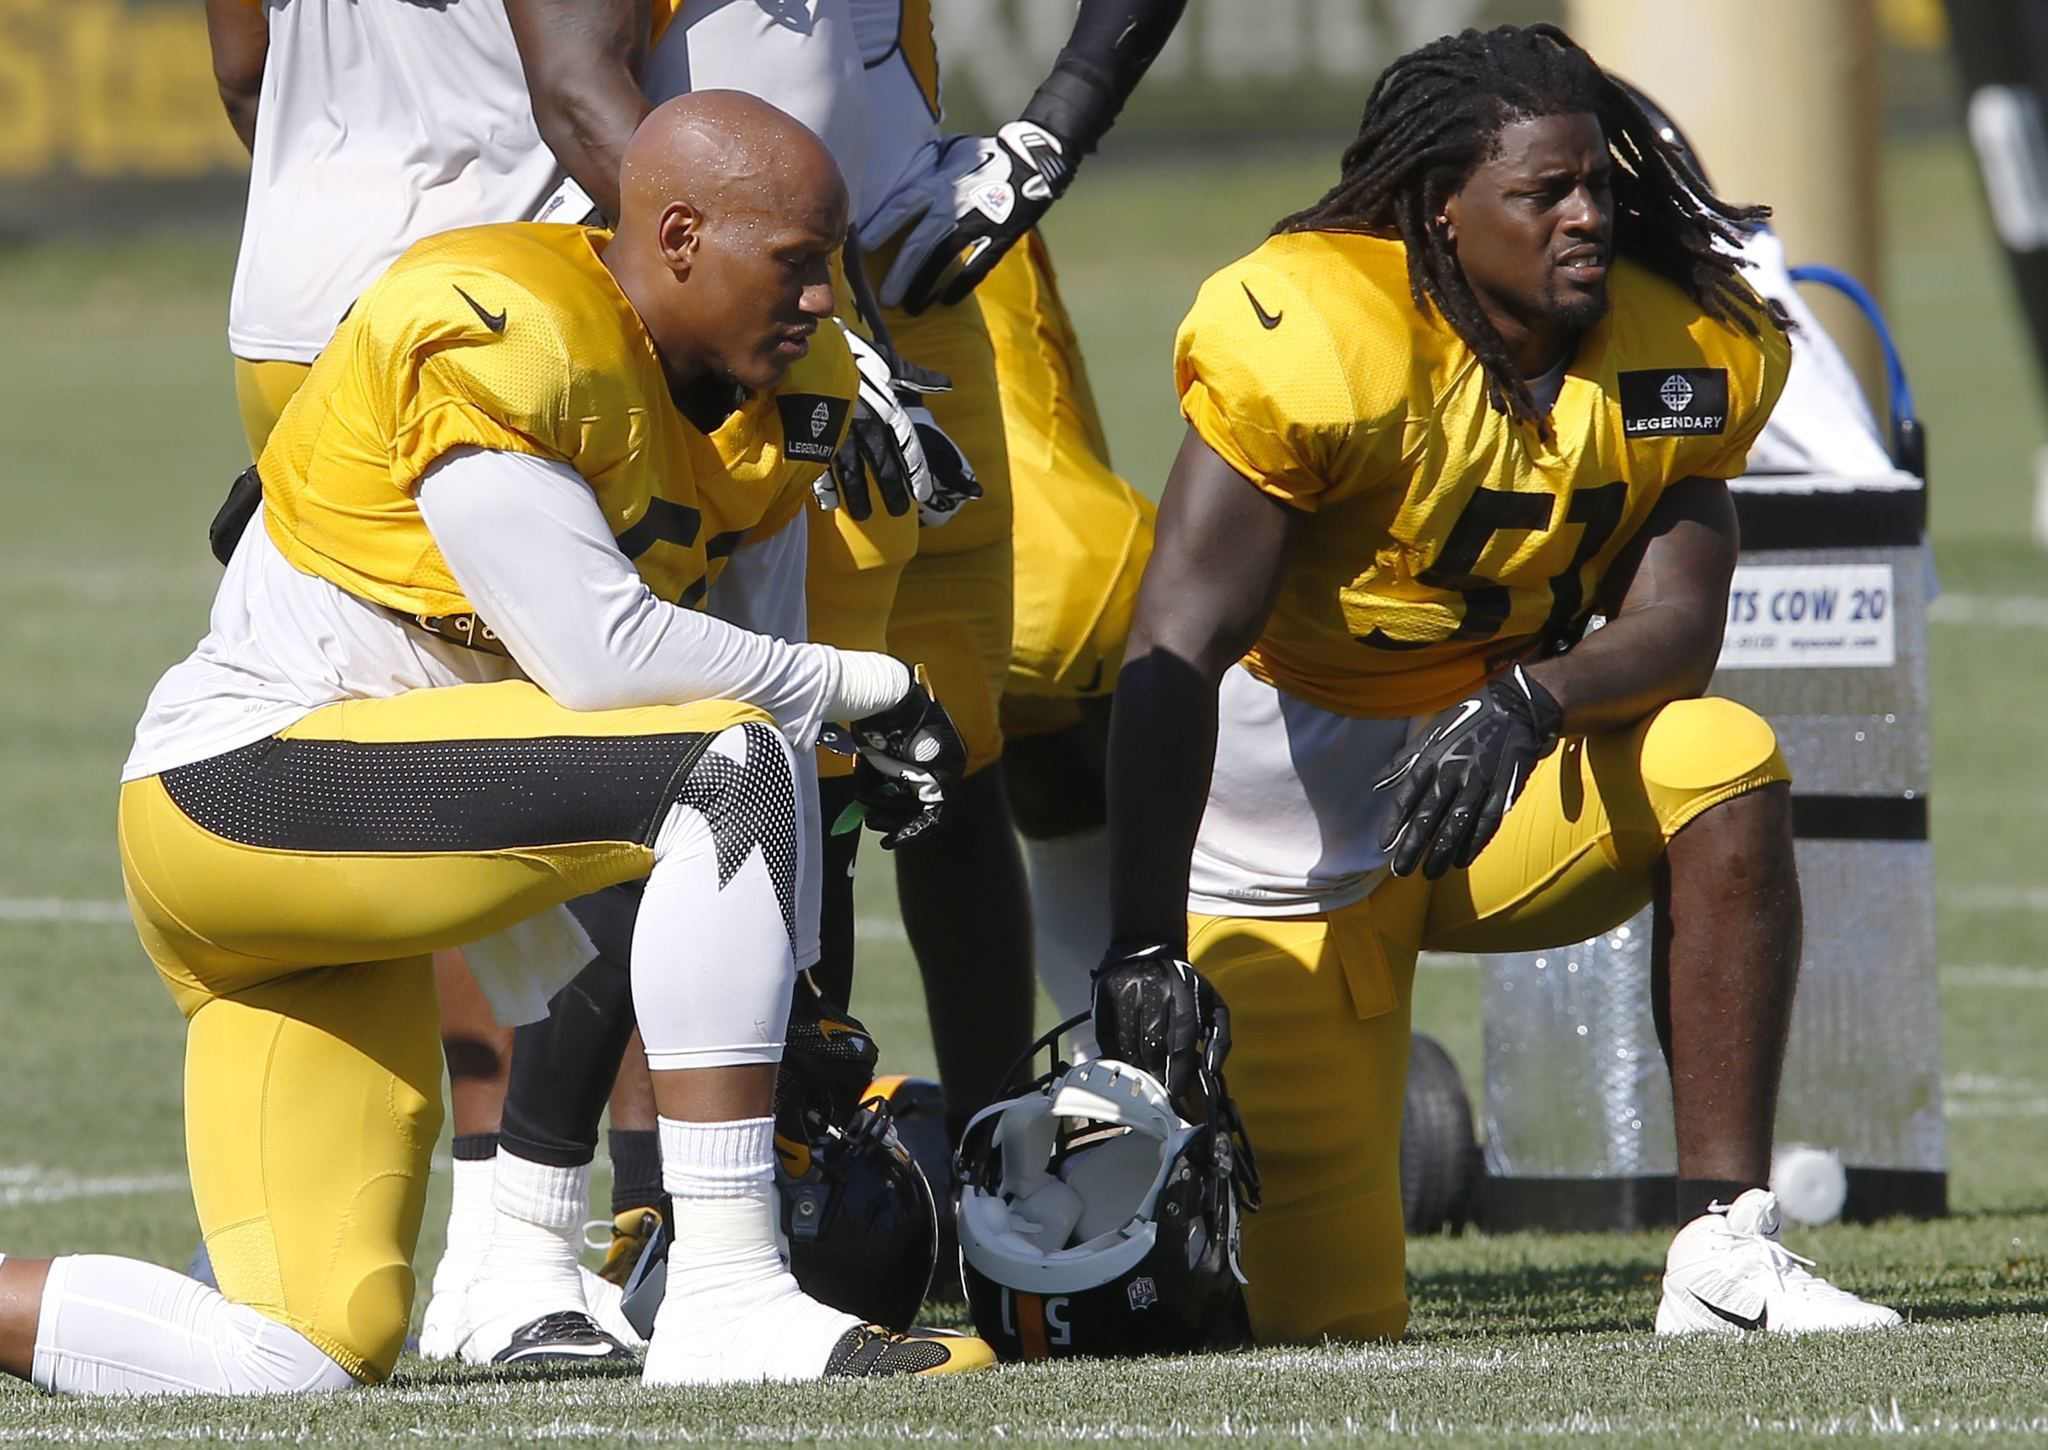 Sean Spence rejoins the Steelers blessed but missing Ryan